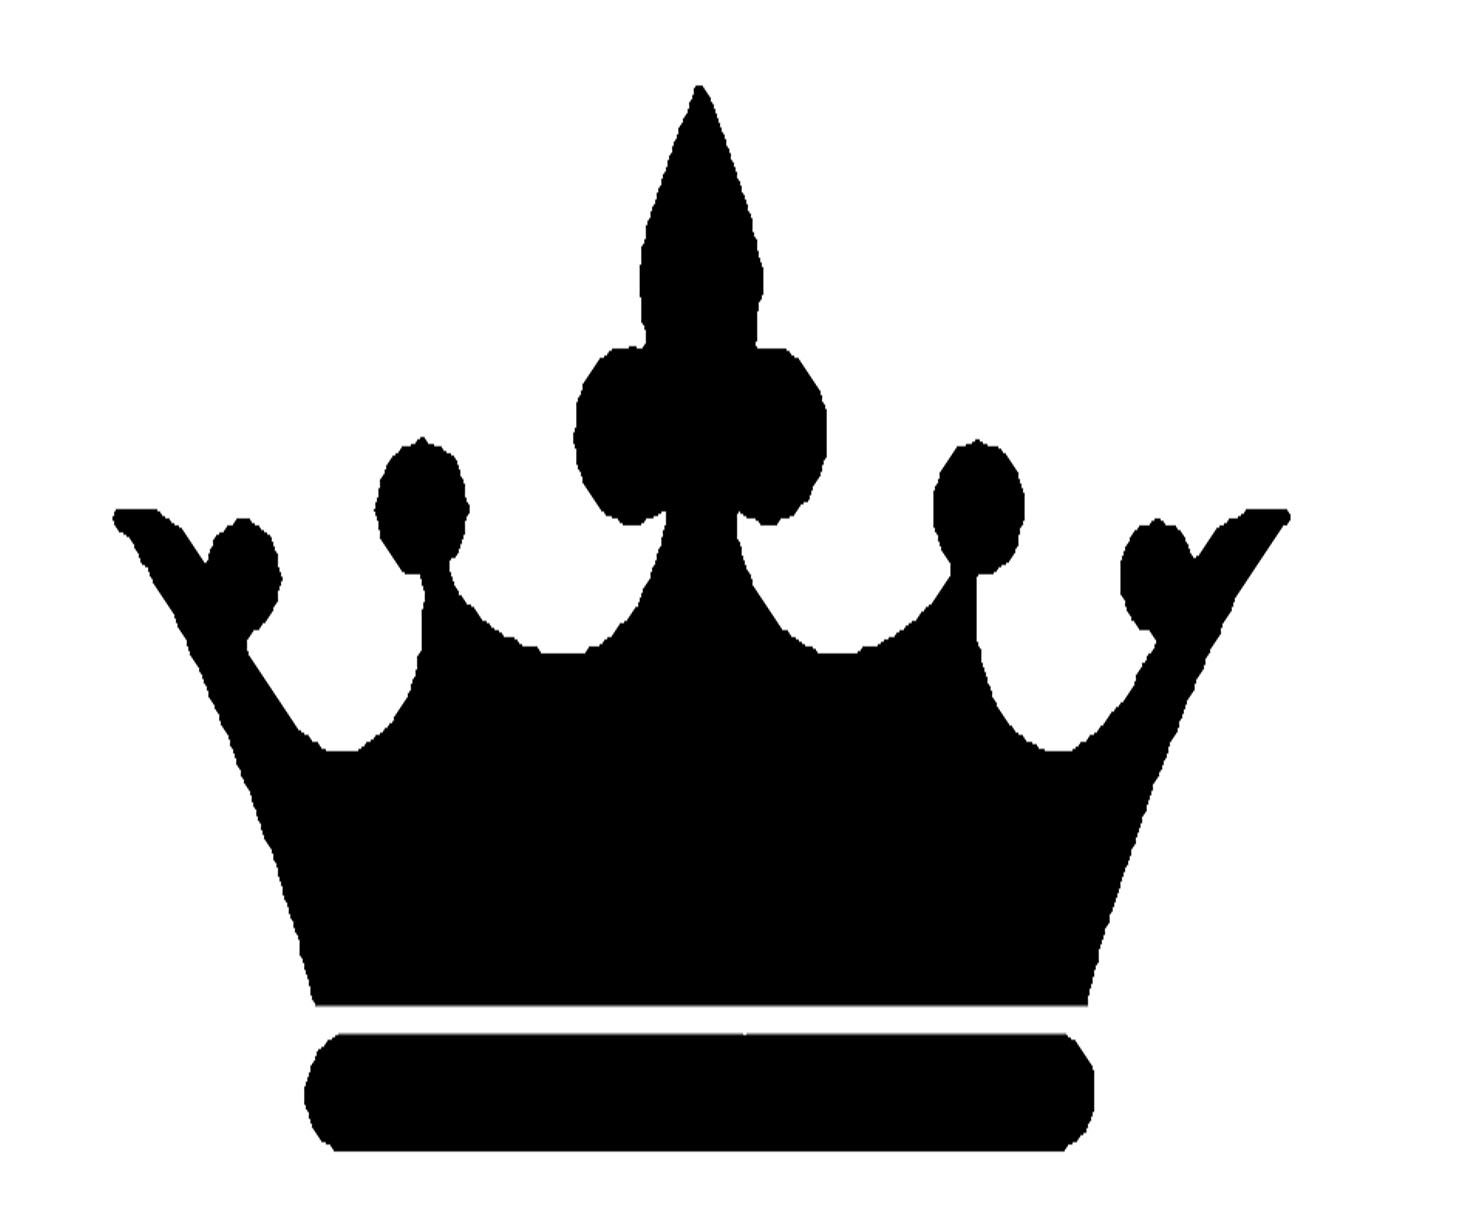 King crown clip art black and white.